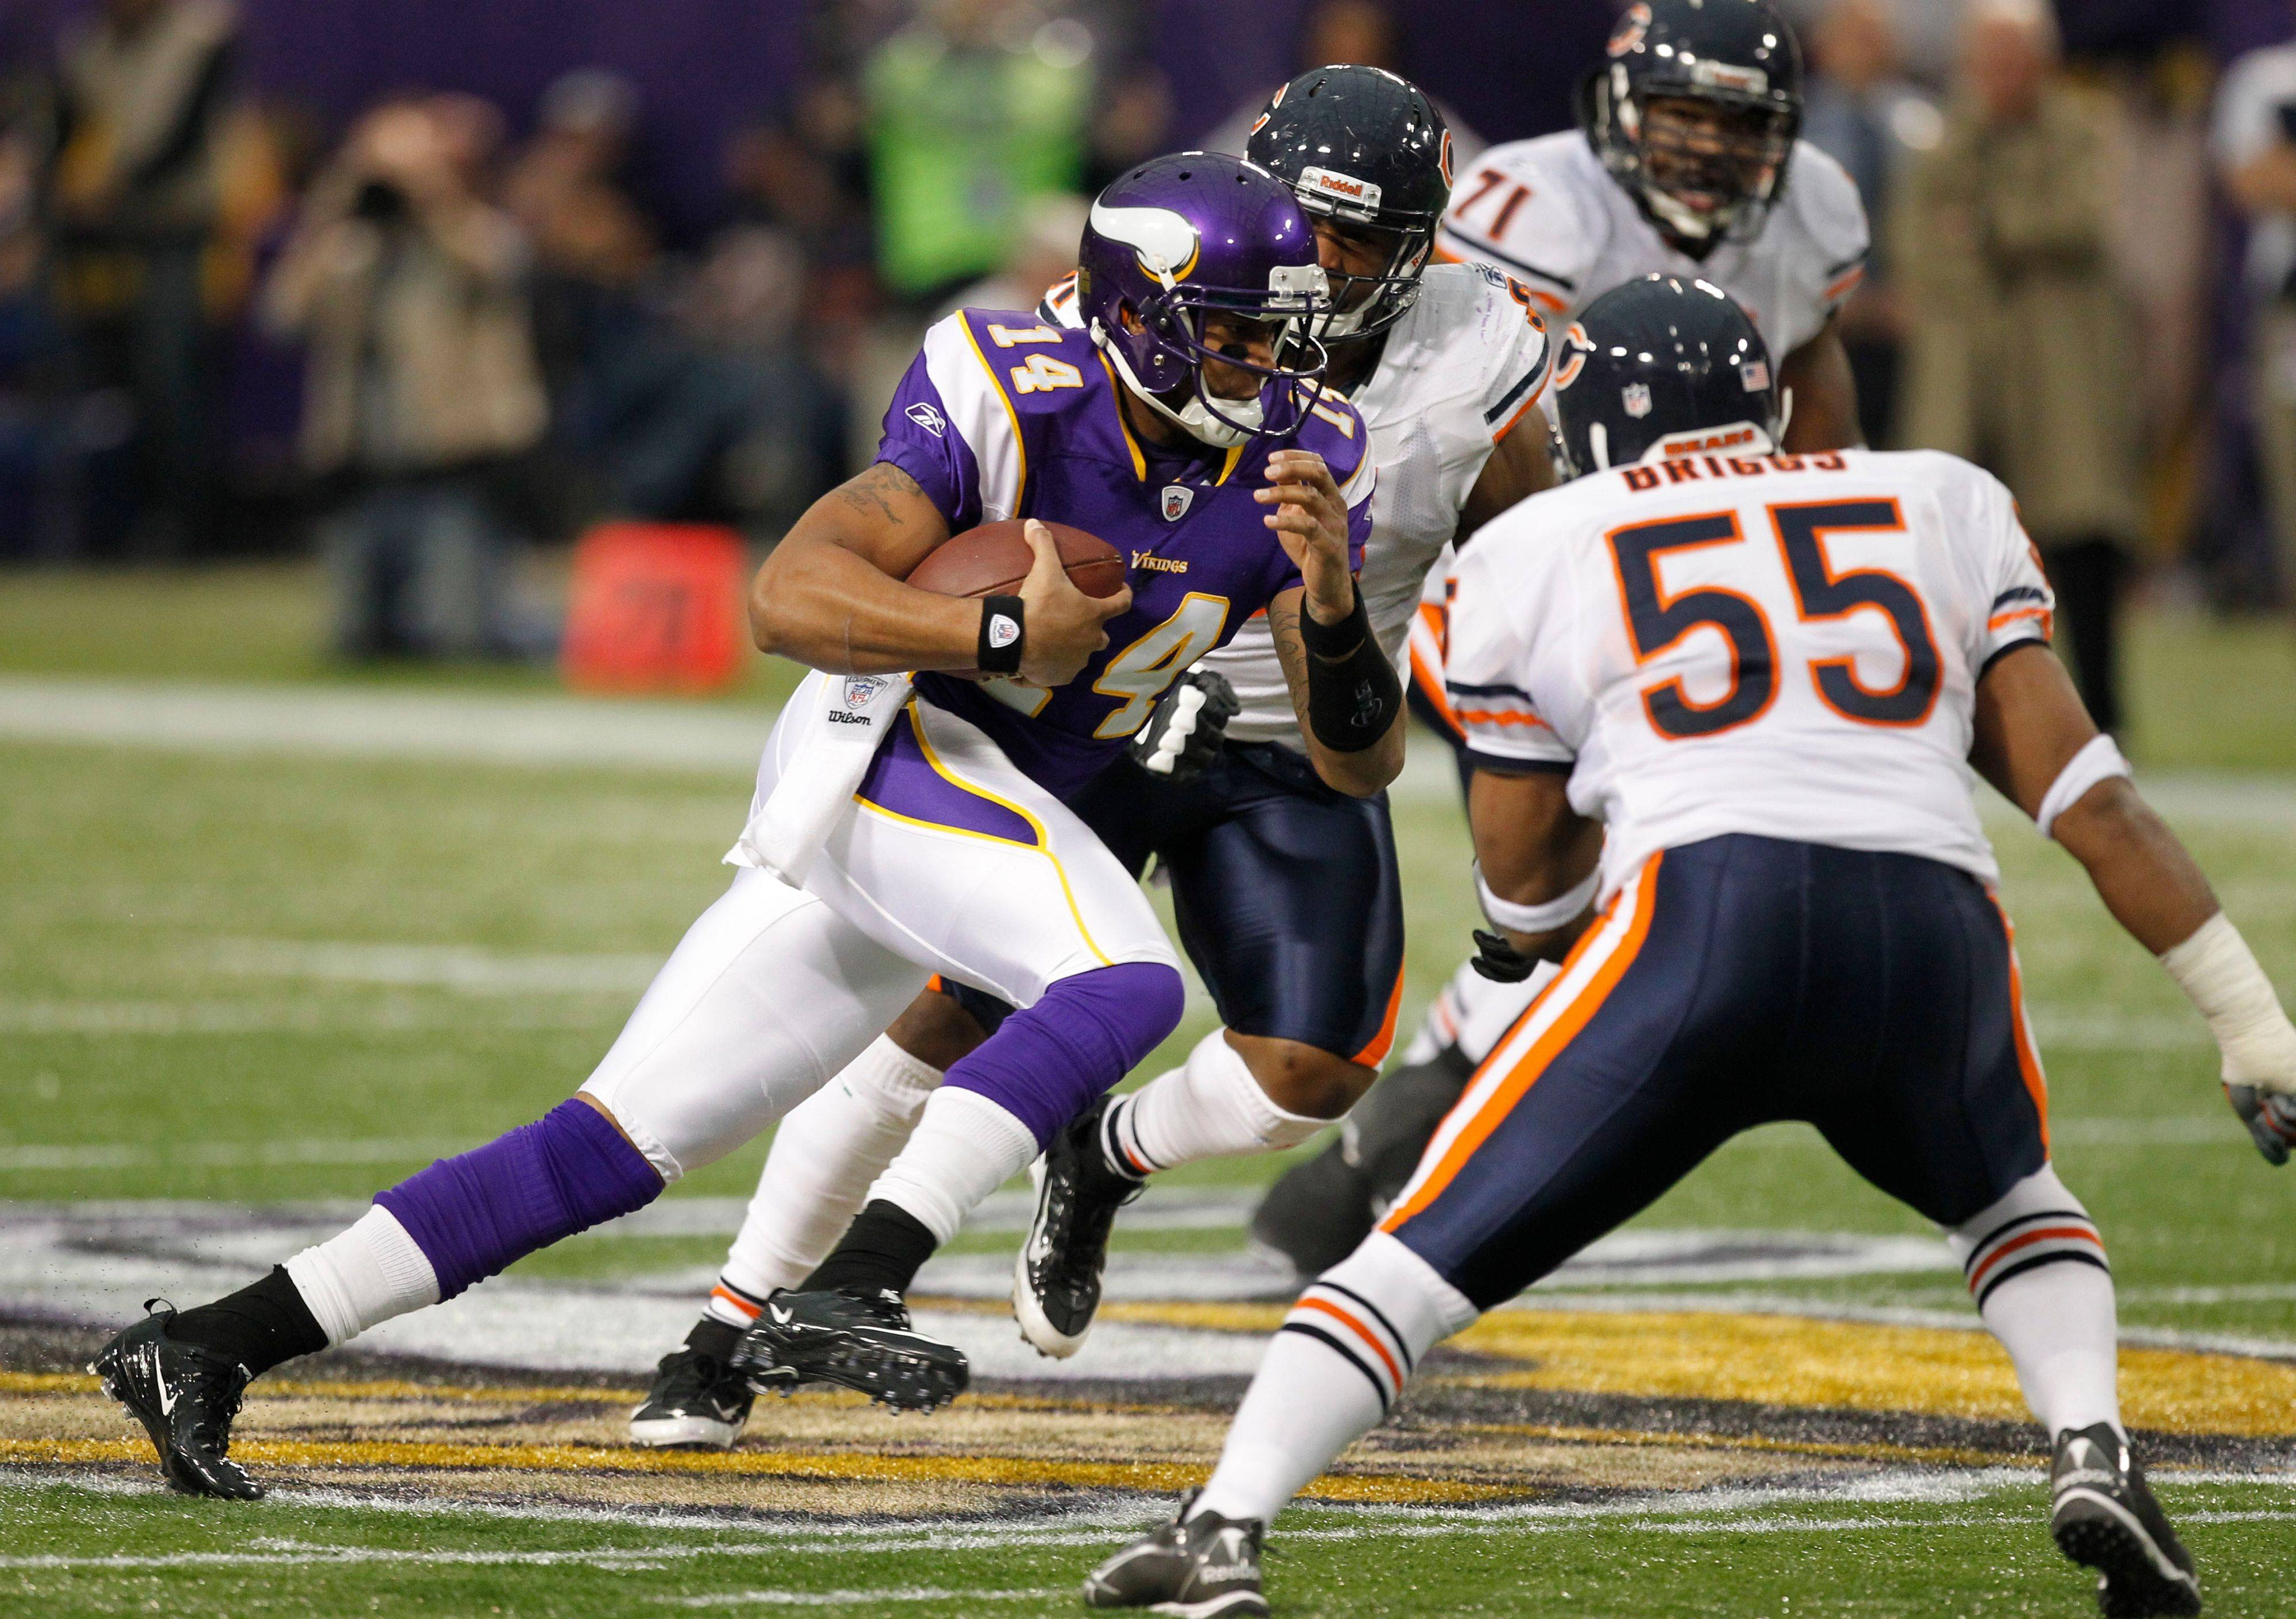 Minnesota Vikings quarterback Joe Webb rushes against the Chicago Bears defense during the first half.